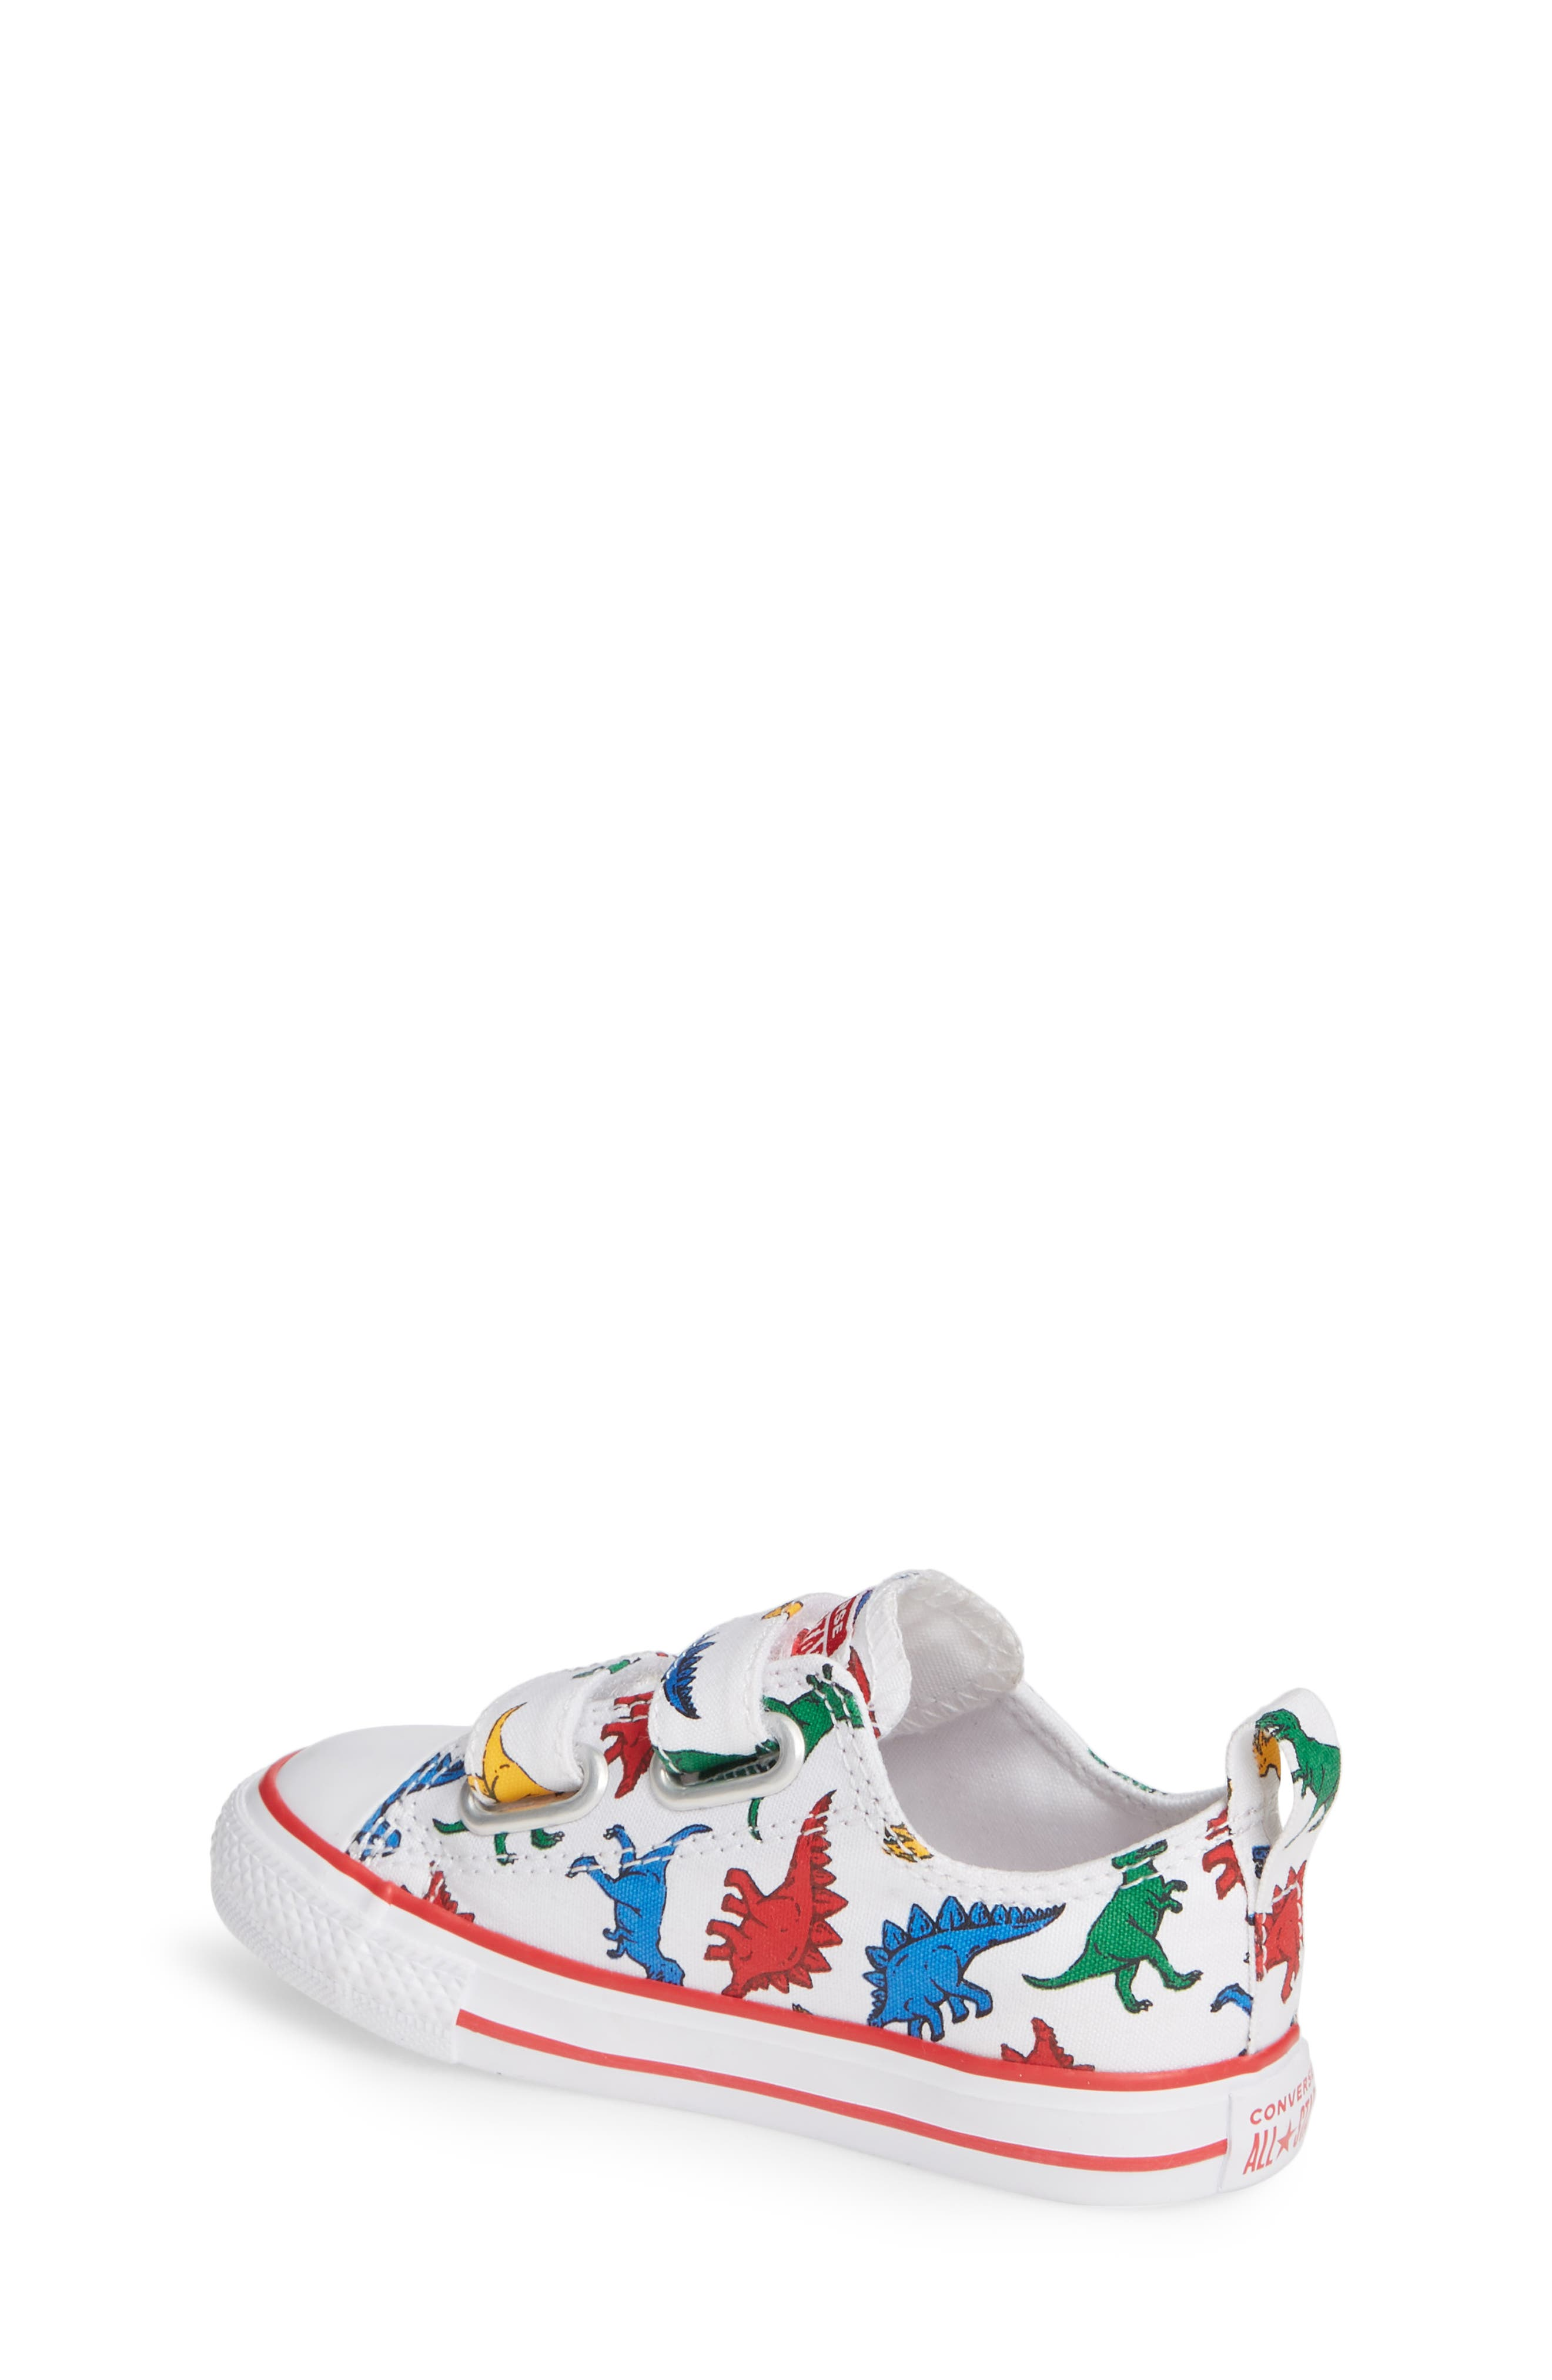 CONVERSE, Chuck Taylor<sup>®</sup> All Star<sup>®</sup> Ox Sneaker, Alternate thumbnail 2, color, WHITE/ ENAMEL RED/ BLUE DINO